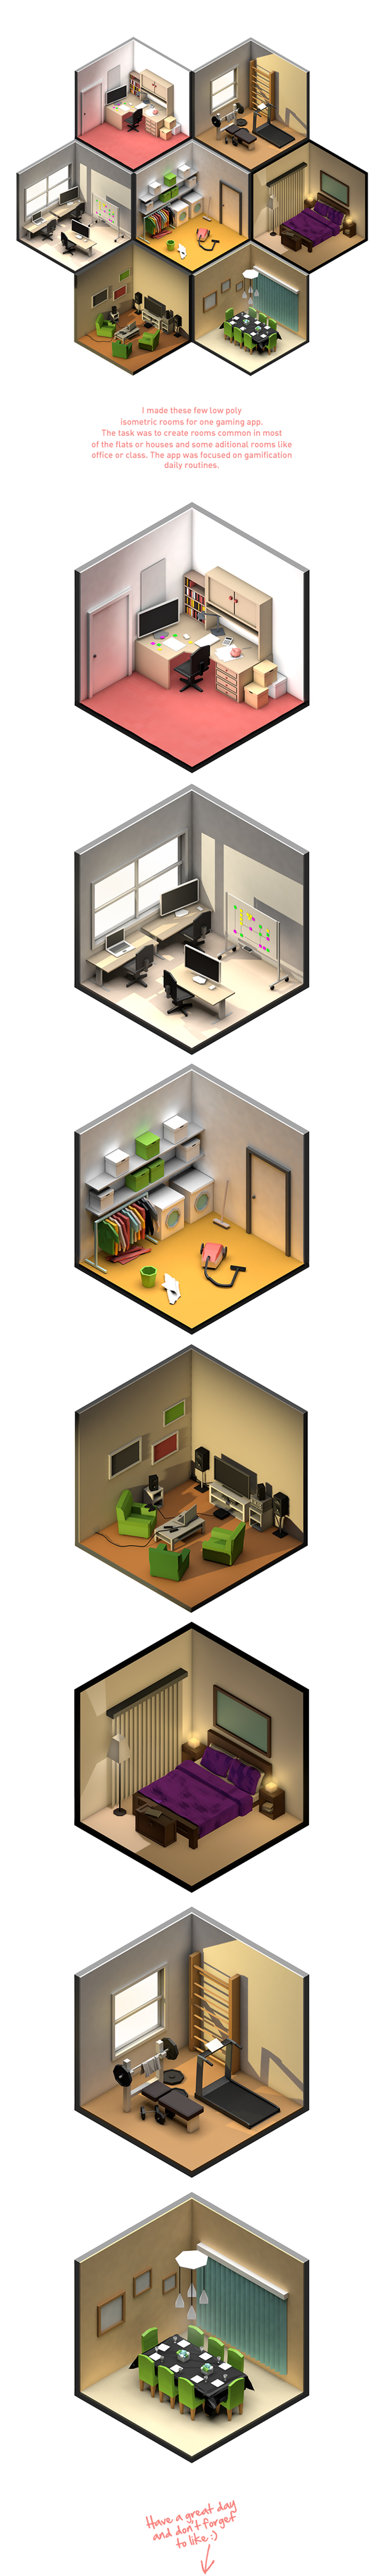 Low Poly rooms by Petr Kollarcik, via Behance